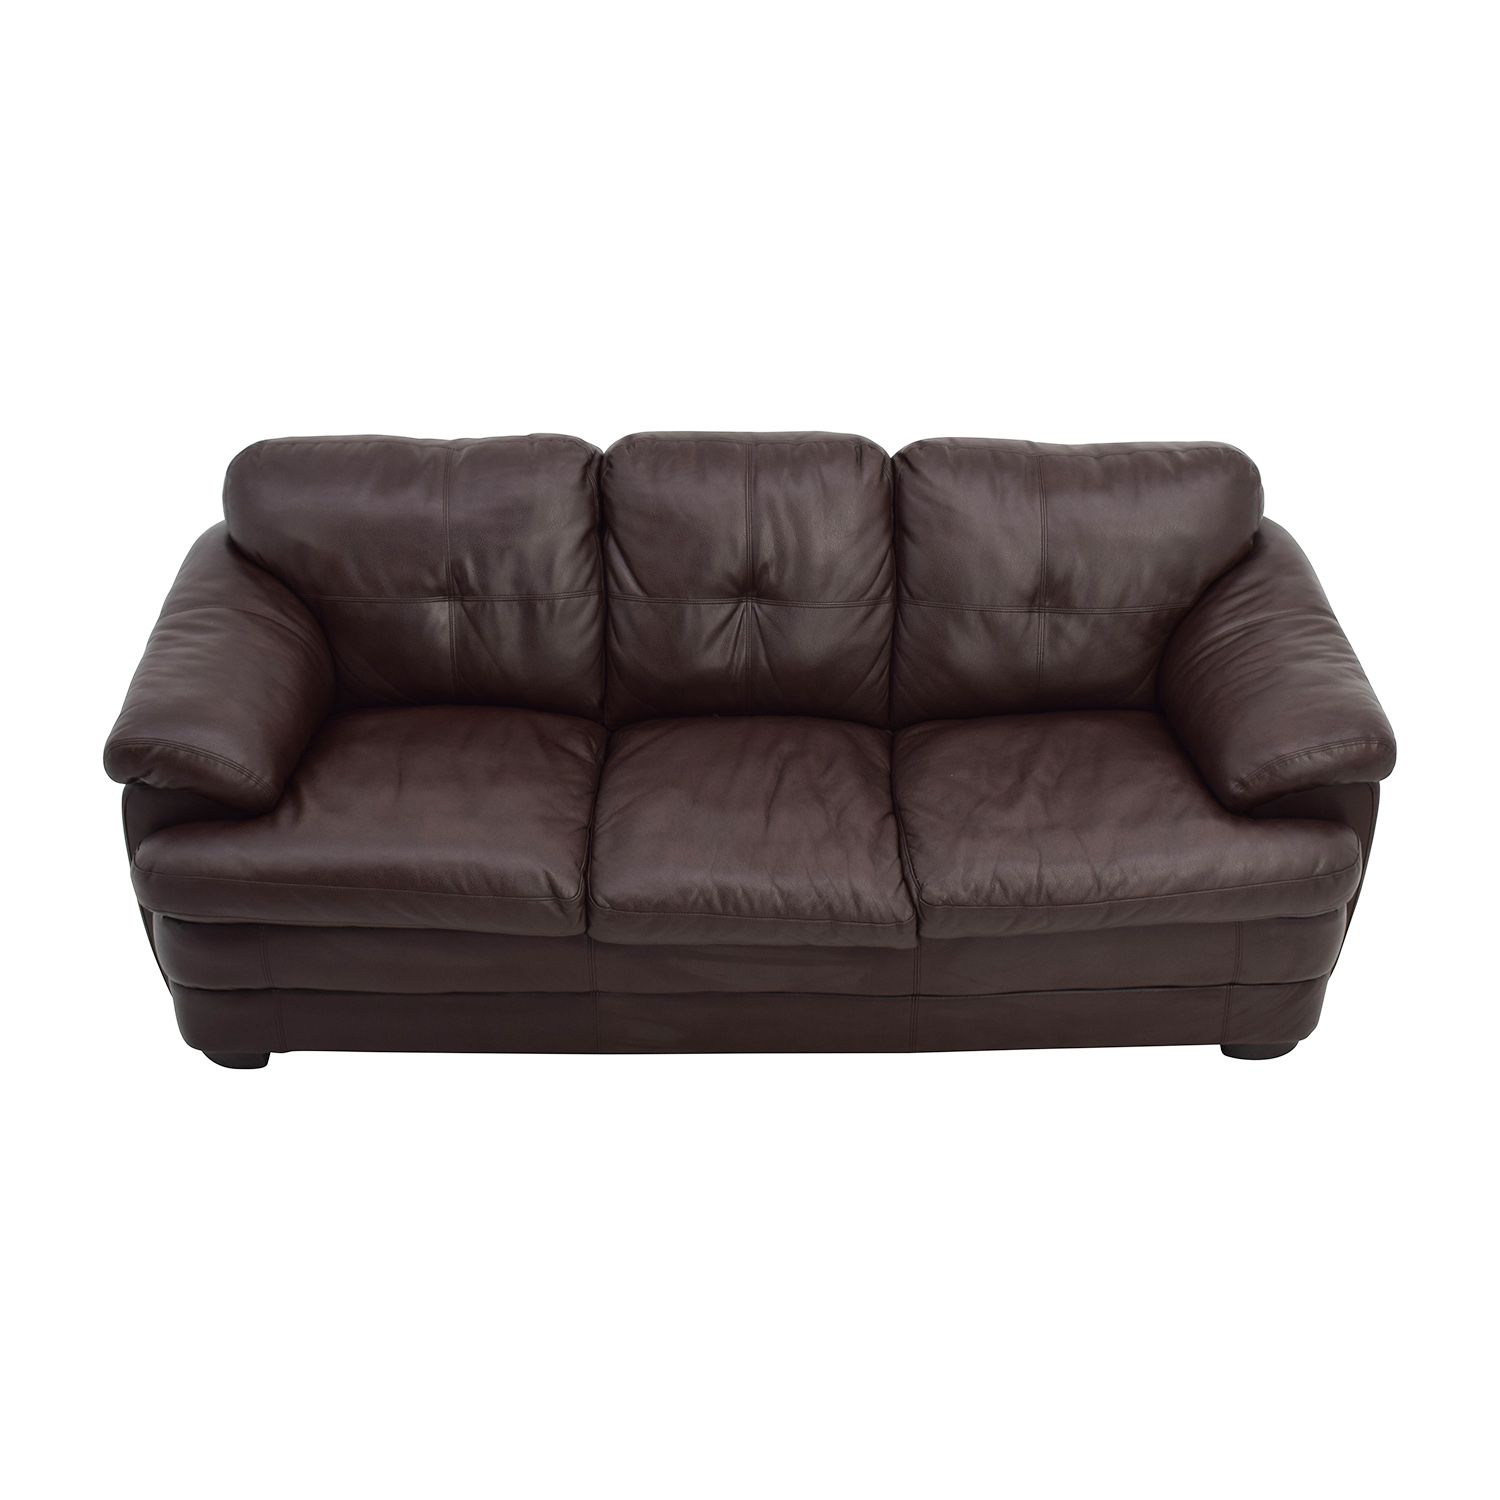 Unkown Brown Faux-Leather Couch nj